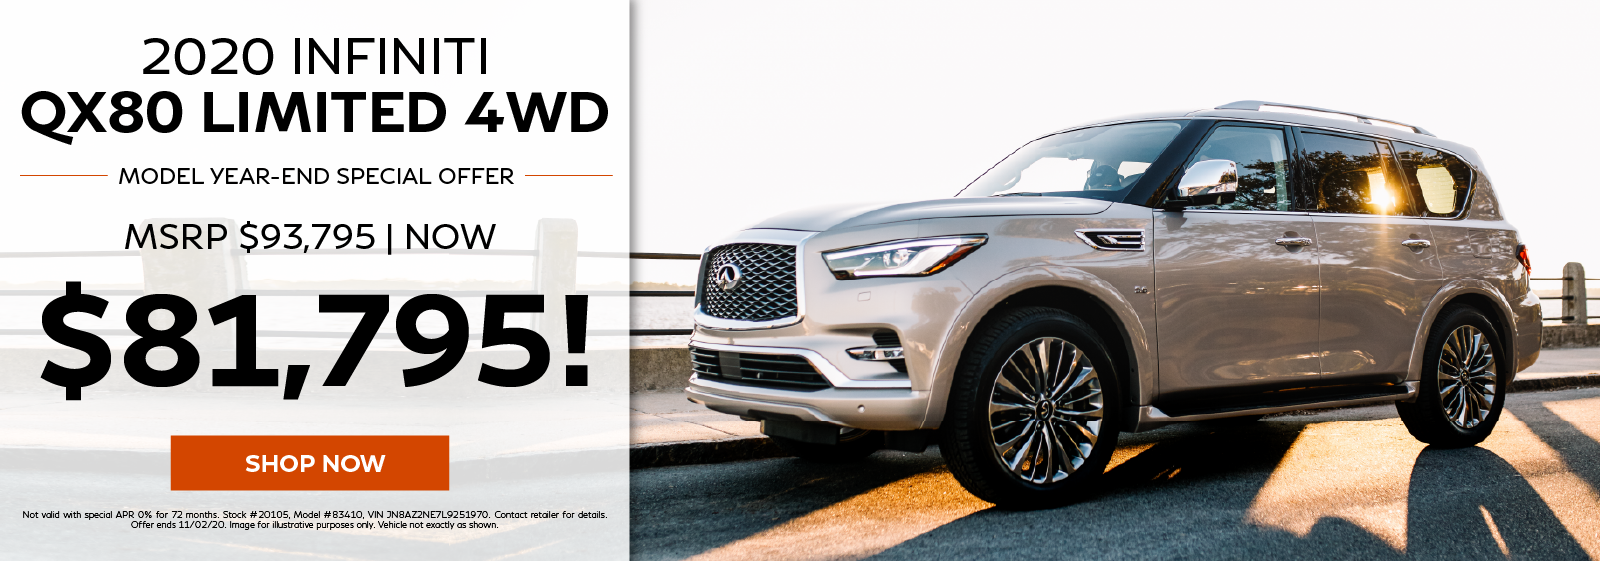 2020 QX80 Limited 4WD - MSRP $93,795 on sale for $81,795! Click to shop now.